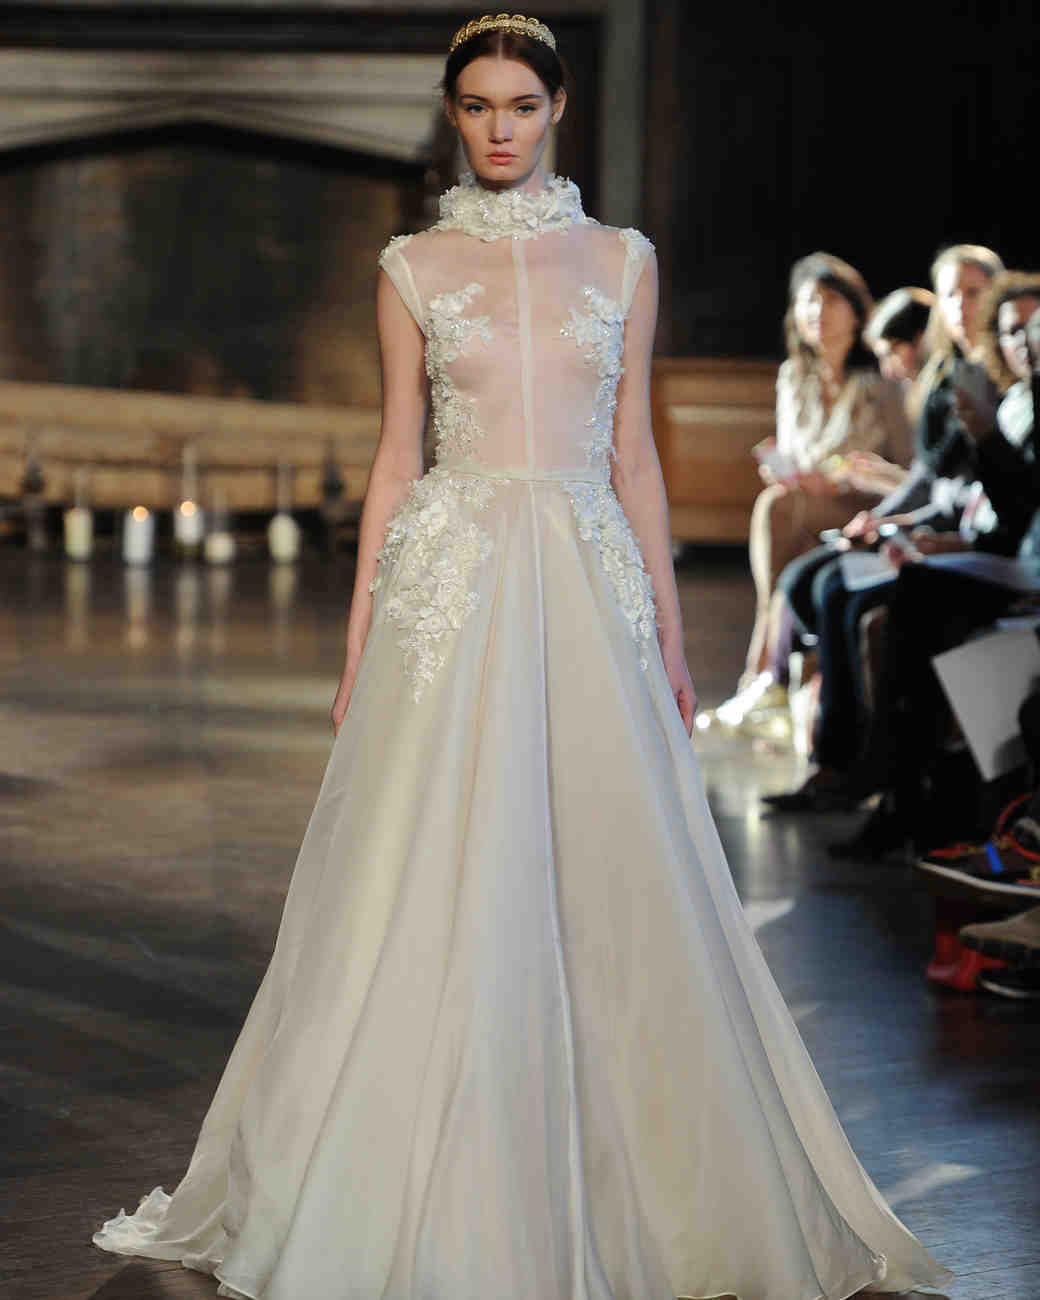 inbal-dror-alt-fall2015-wd111654-019.jpg